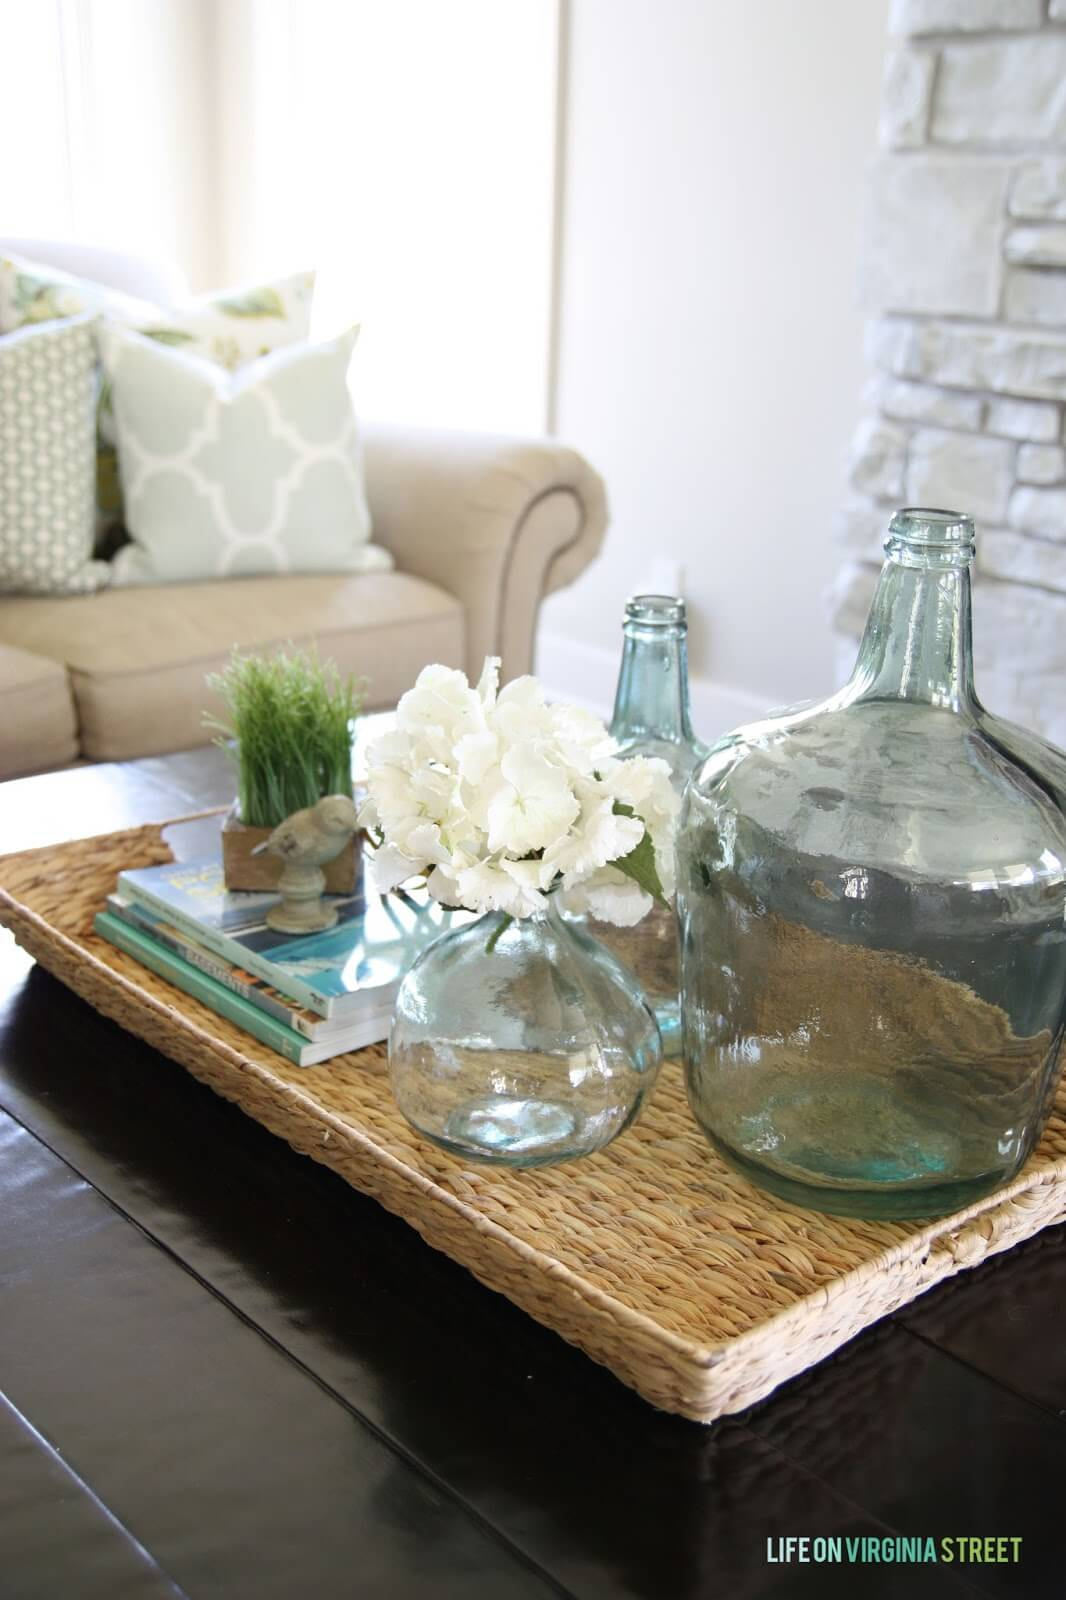 A Rustic Wicker Table with Coastal-Themed Accents